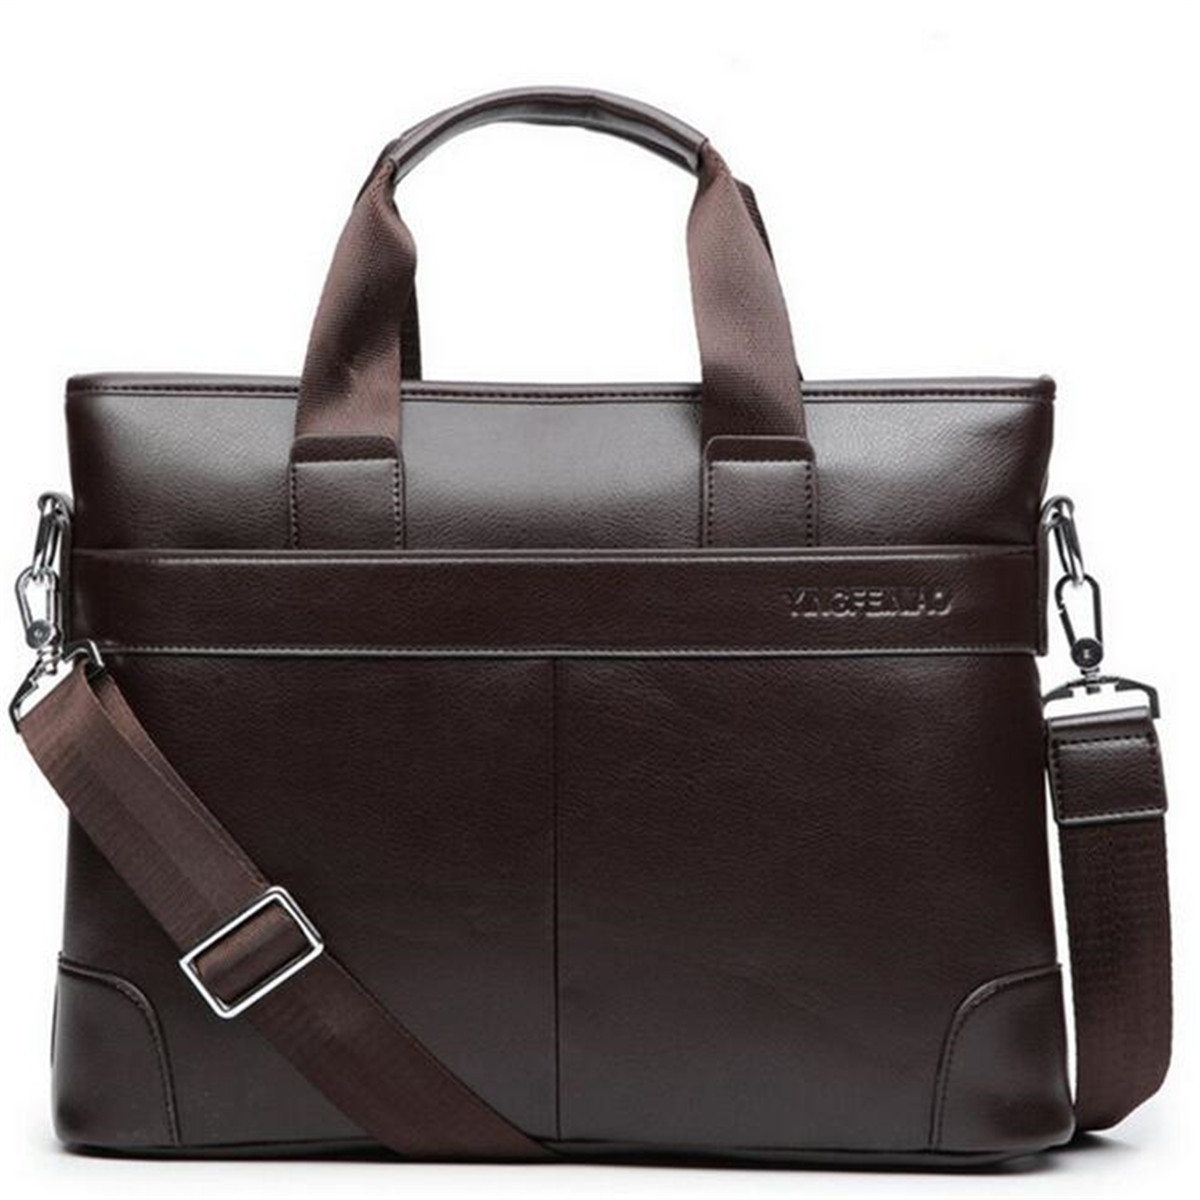 Men's Briefcase Leather Satchel Business Shoulder Messenger Bags Laptop Handbag